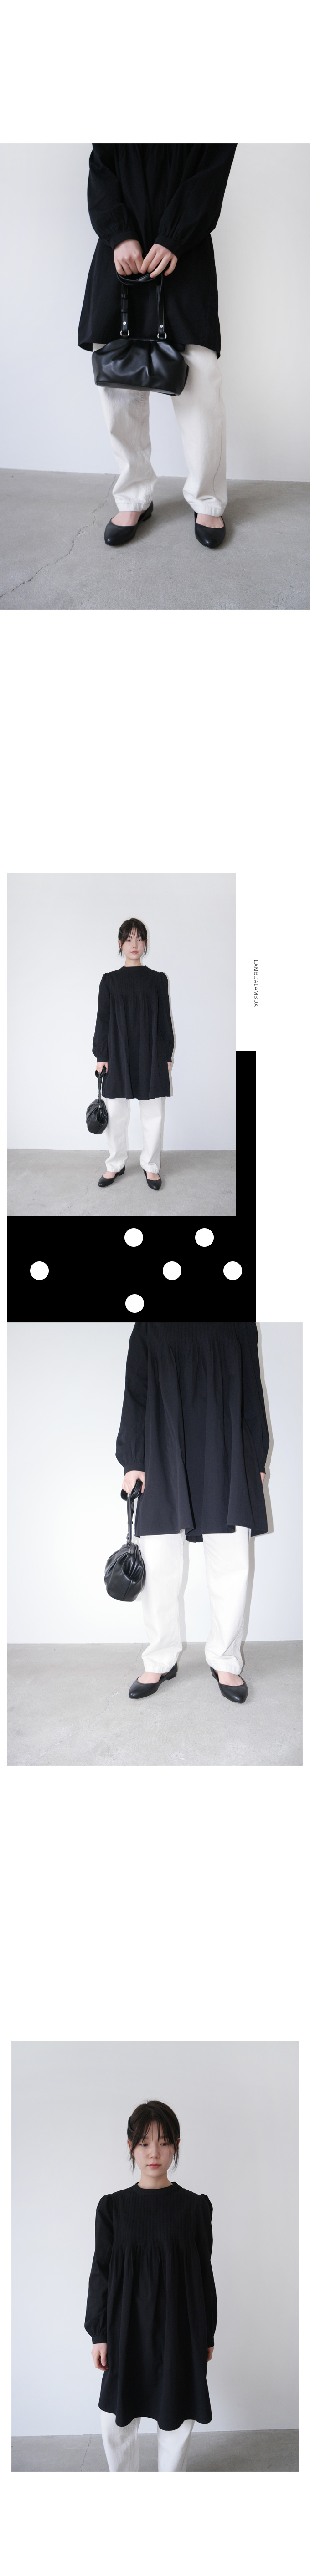 cosmo slim flat shoes